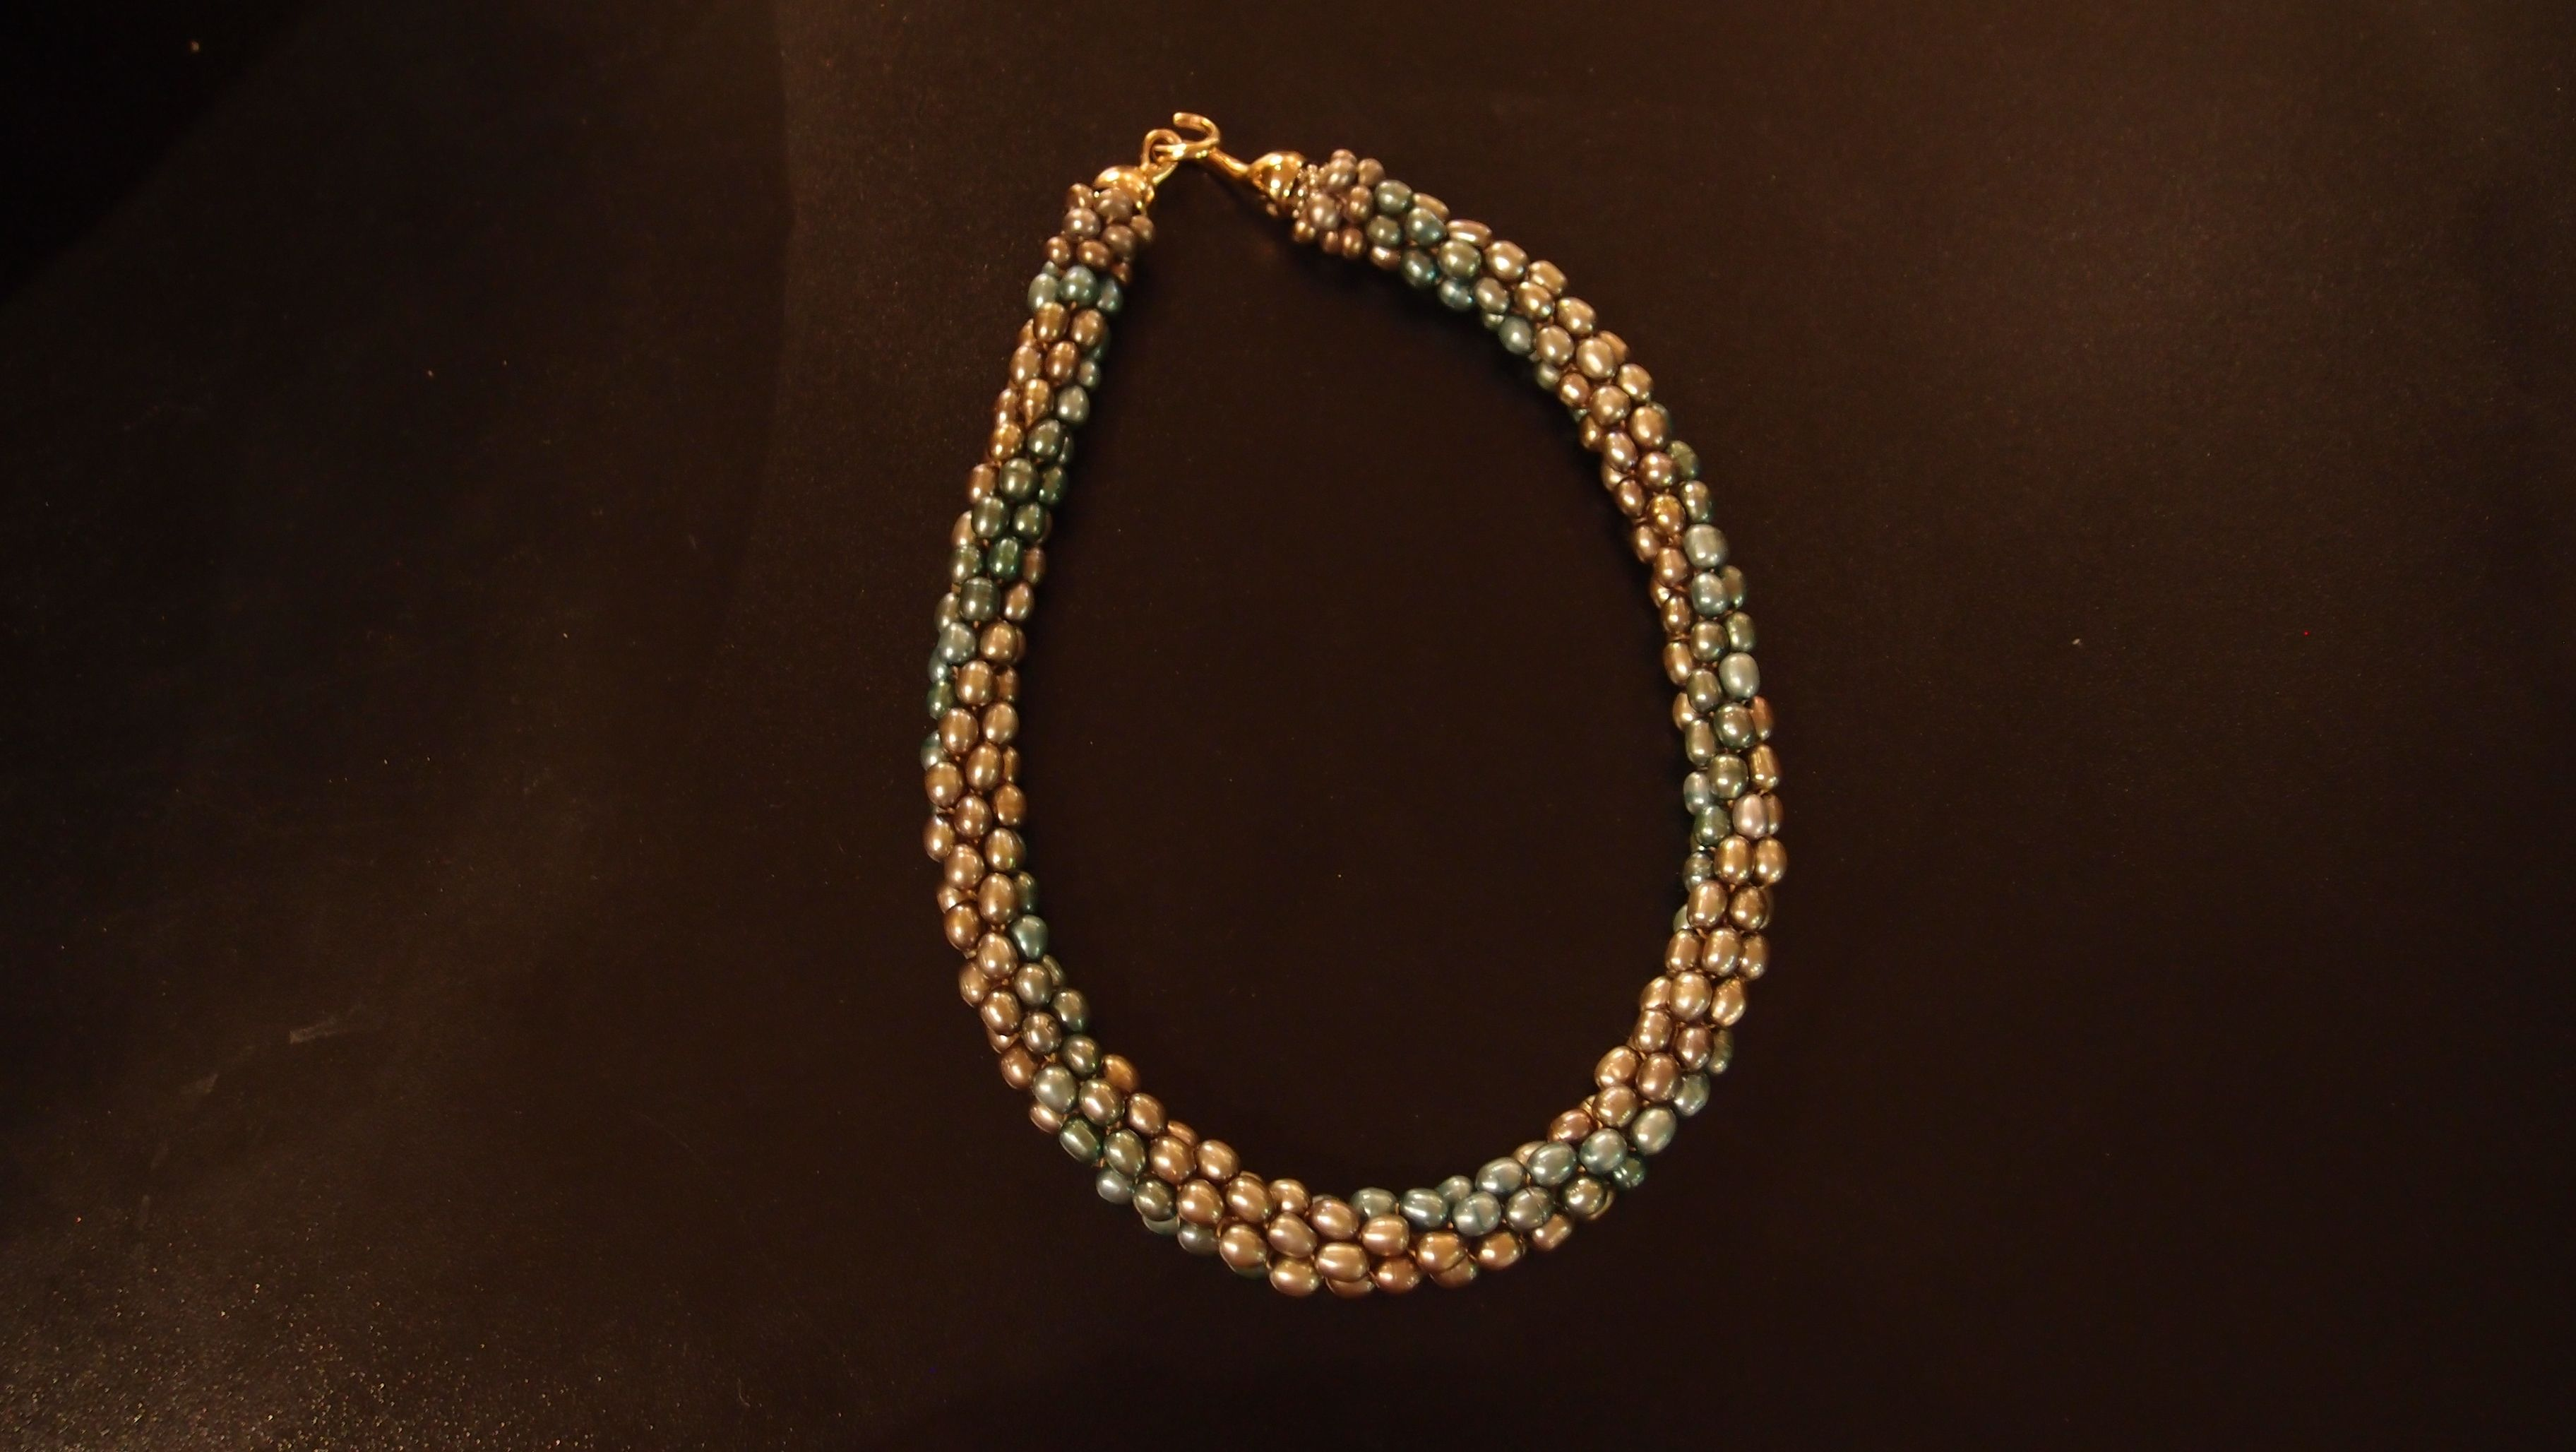 Two Tone Pearl Necklace Julio Pagliani featured at Spirits in the Wind Gallery Golden, CO